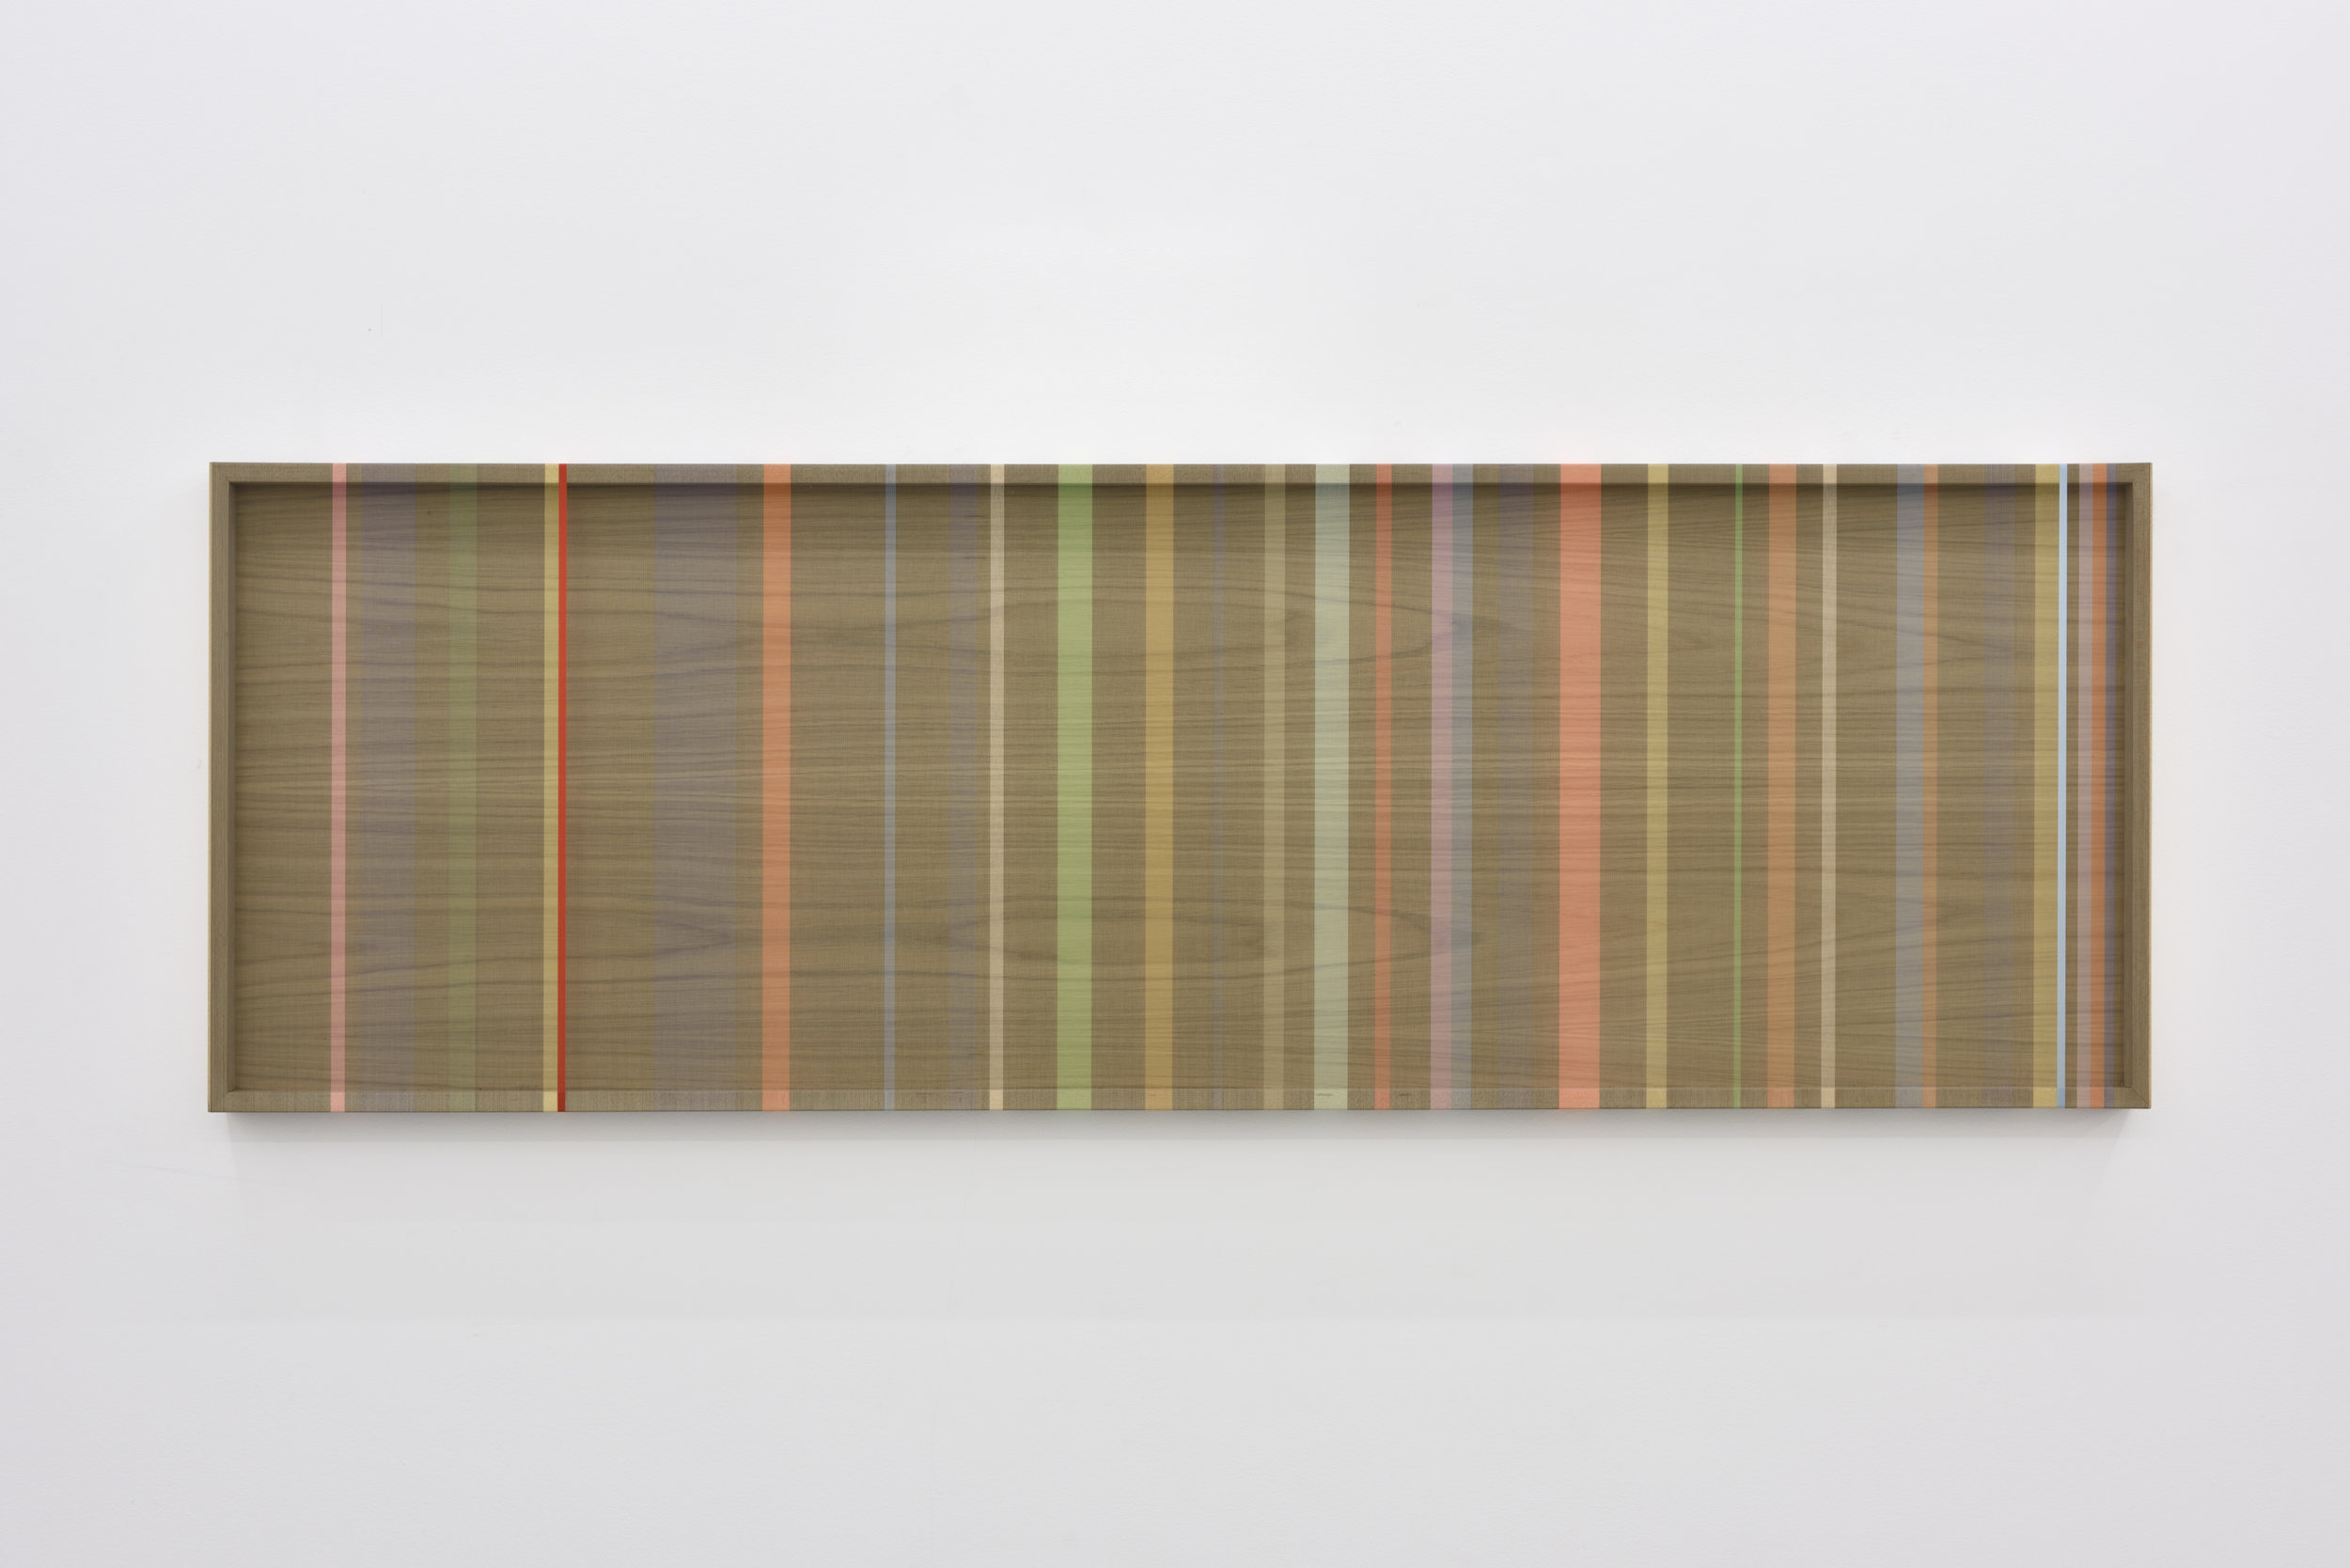 Untitled (Navy hovering thread), 2016 single-strand rayon and metallic thread on wood 61 x 183 cm - 24 1/32 x 72 1/16 inches